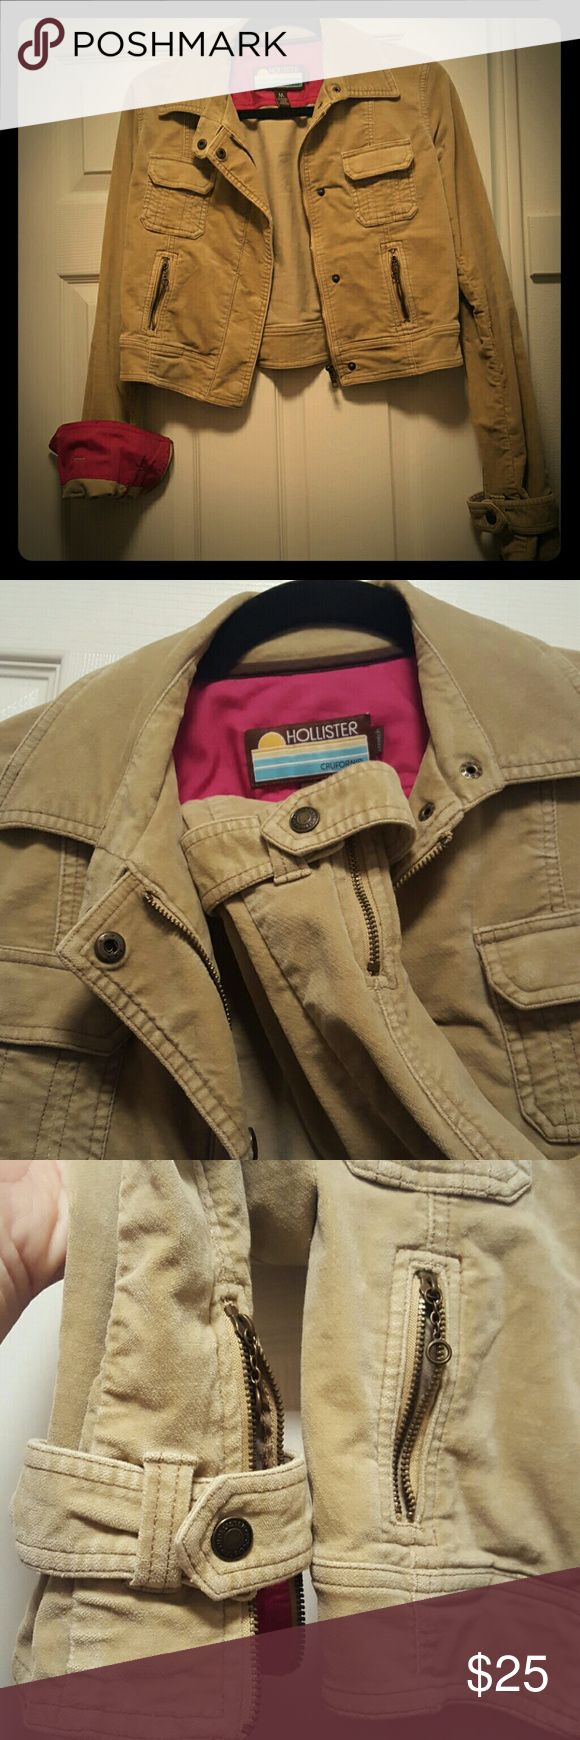 ❤Hollister jacket size M 🎉 tan color coper jacket.❤ two zip pockets and zip around sleeve. it's a very good used jacket. I love it. but can't fit in any longer.😣 I do bundle 👍 Hollister Jackets & Coats